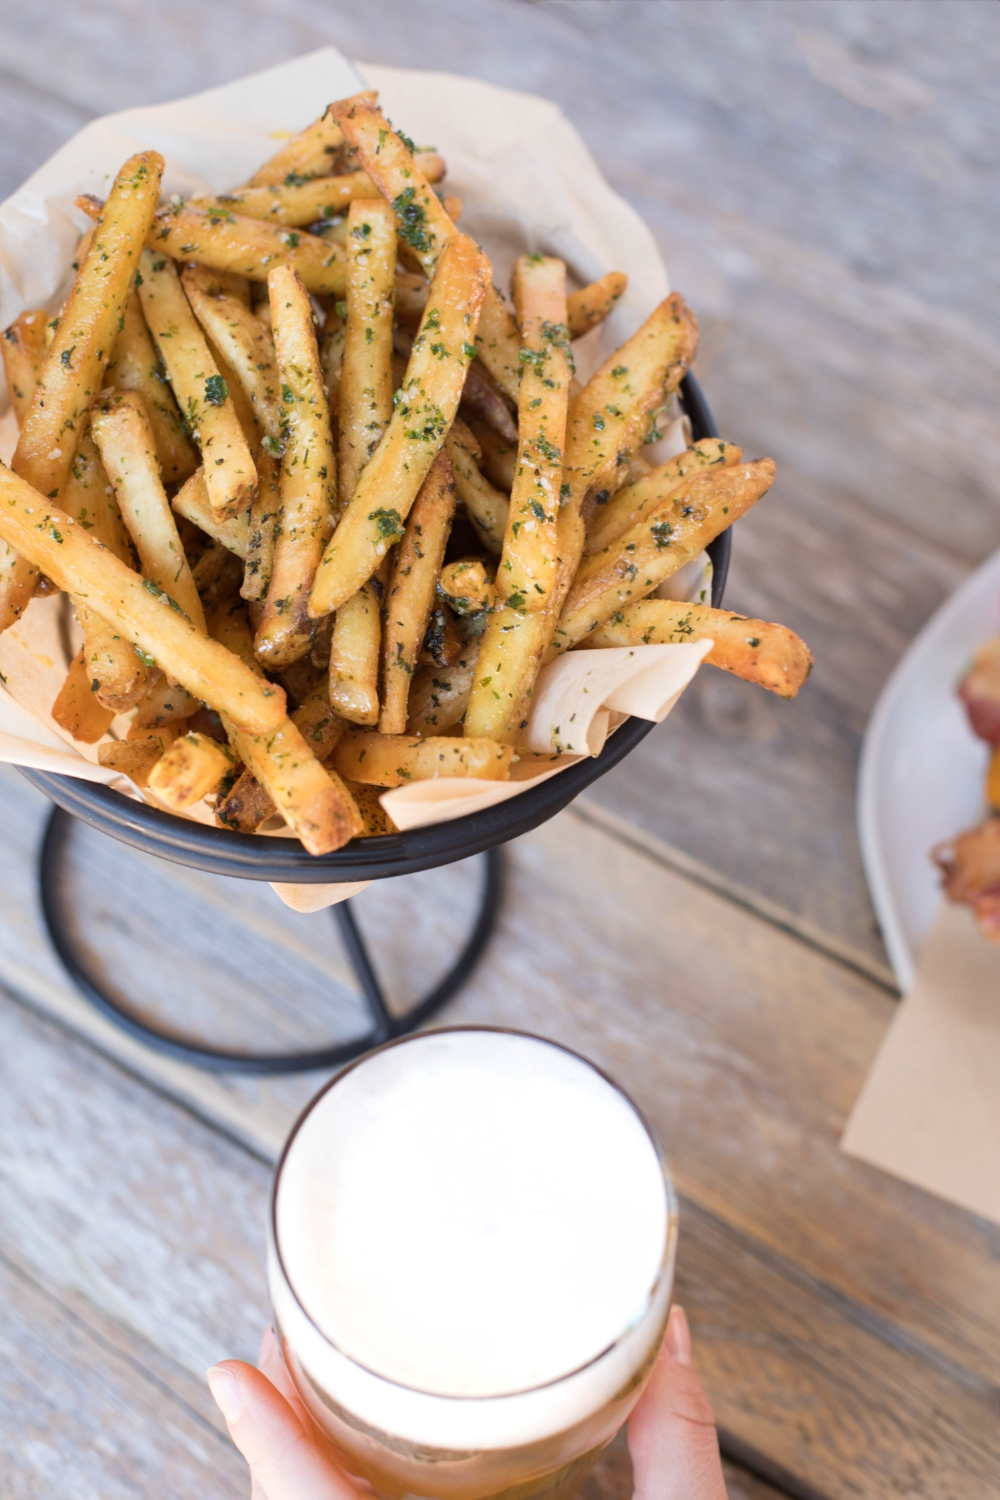 Jimena-Peck-Denver-Food-Photographer-Gordon-Biersch-Brewery-French-Garlic-Fries